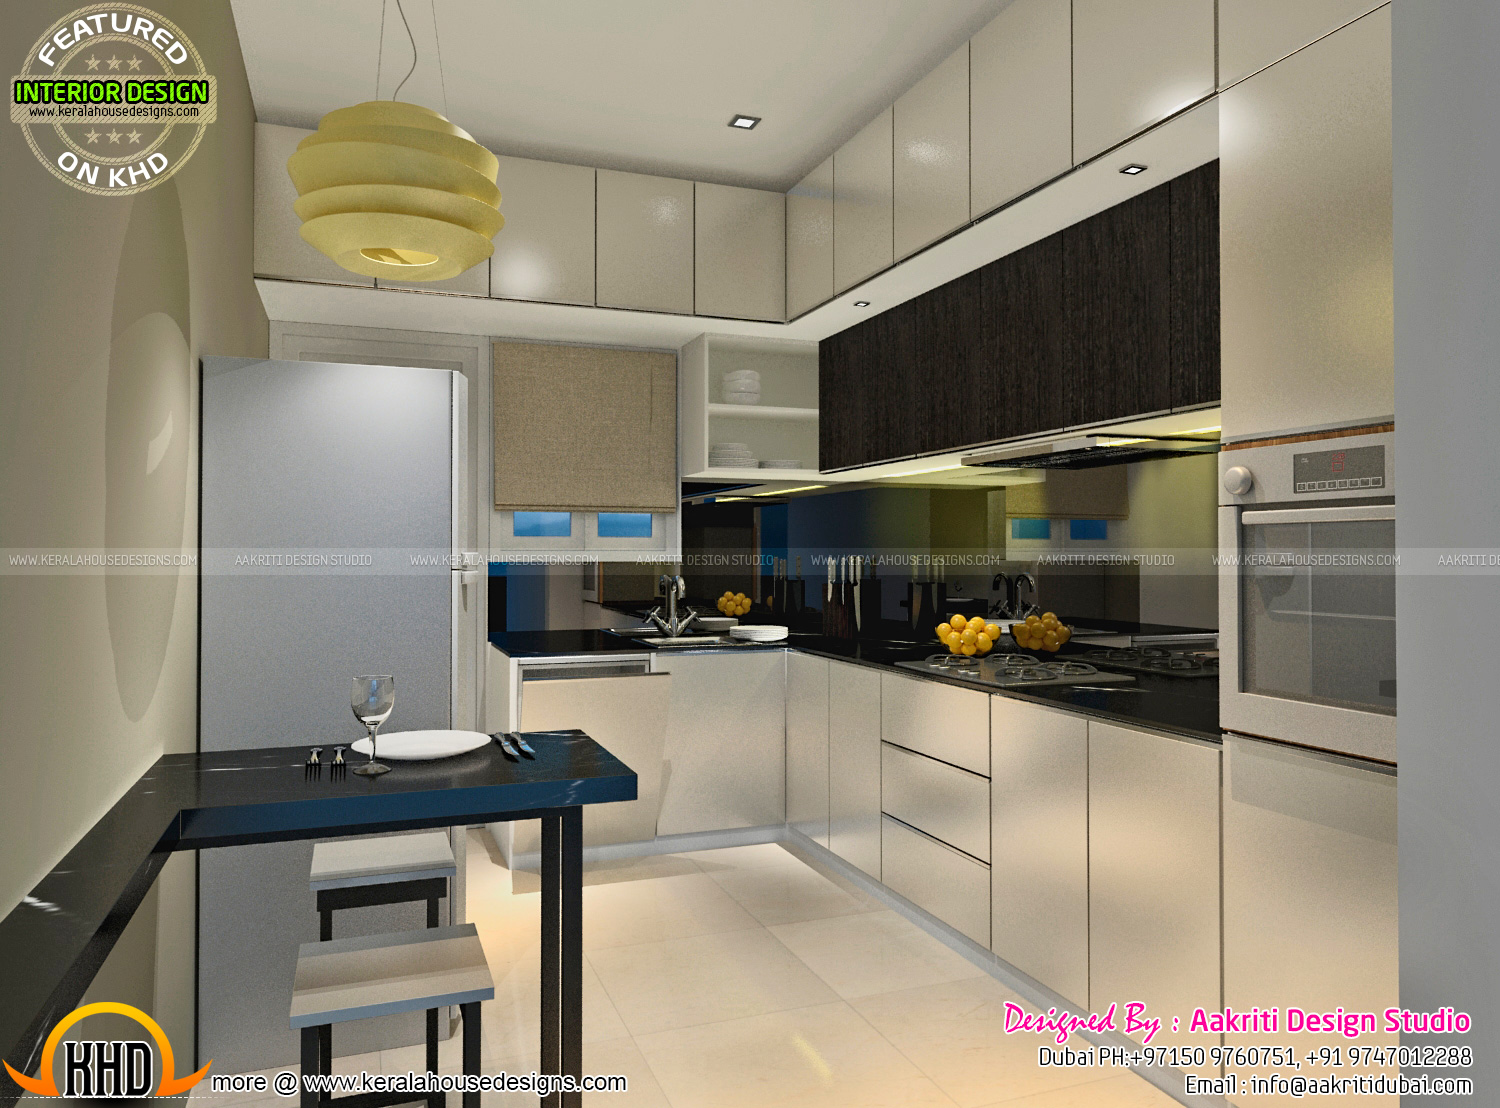 Dining kitchen wash area interior kerala home design for Kitchen interior design images